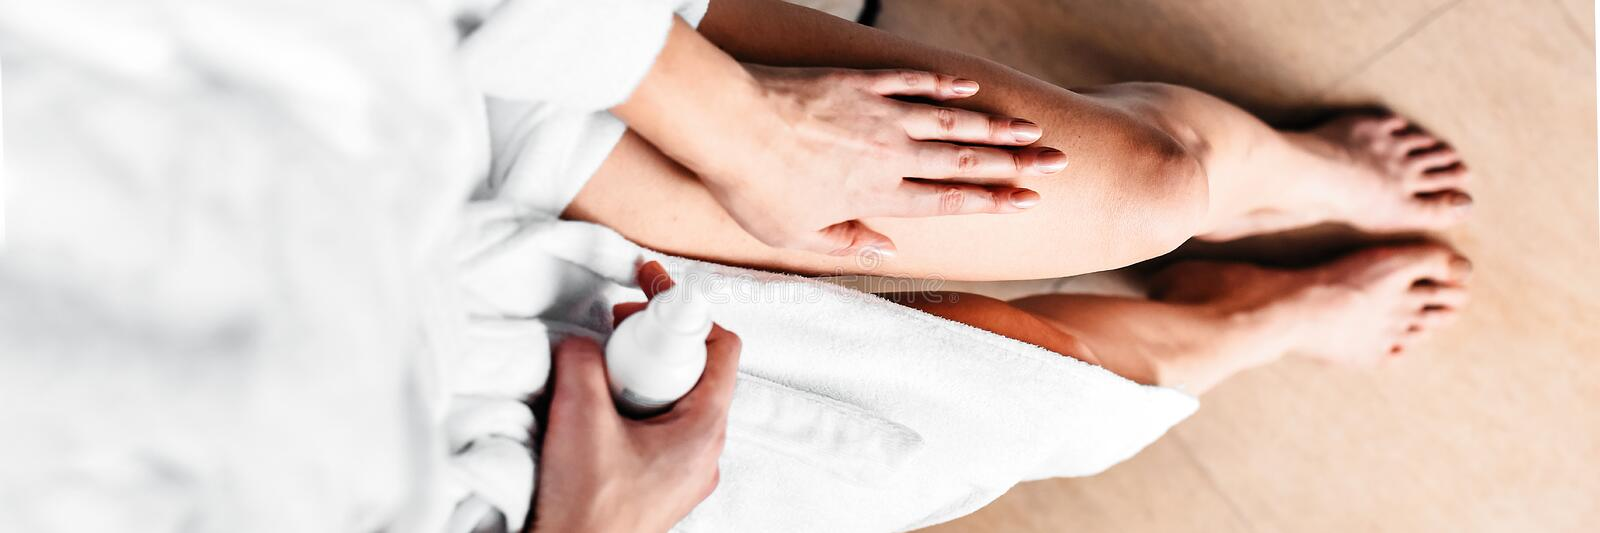 The girl in the bathroom puts anti-cellulite cream, serum on the legs and body. Body care concept. Top View. Banner stock photo